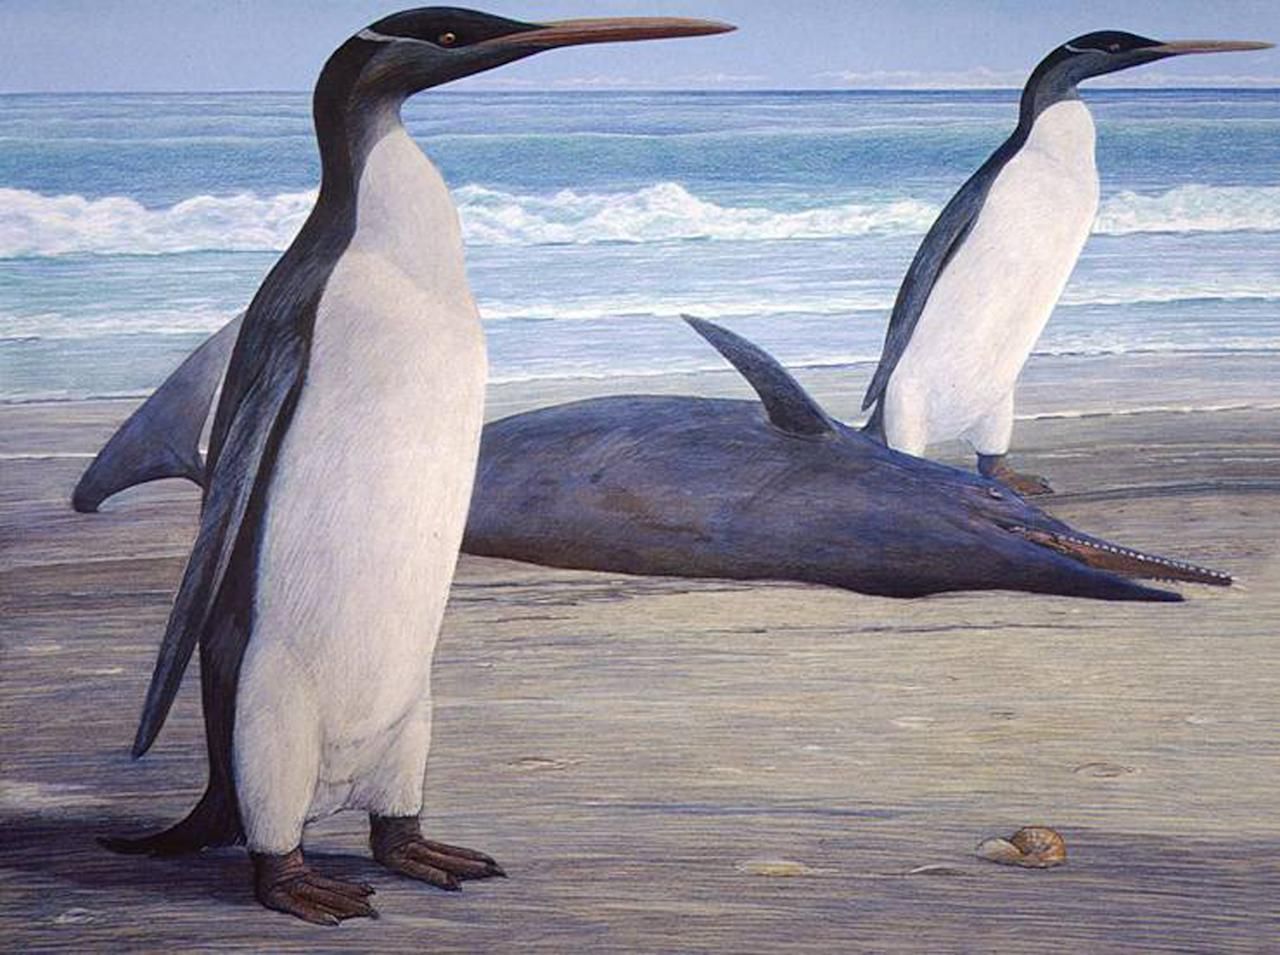 This undated graphic illustration released by University of Otago on Wednesday, Feb. 29, 2012 shows a giant penguin called a Kairuku. It's taken 26 million years, but scientists say getting the first glimpse at what a long-extinct giant penguin looked like was worth the wait. Experts from New Zealand and the United States have reconstructed the fossil skeleton of one of the giant sea birds for the first time, revealing long wings, a slender build and a spearlike bill that have them describing it as one elegant bird. (AP Photo/University of Otago) MANDATORY CREDIT